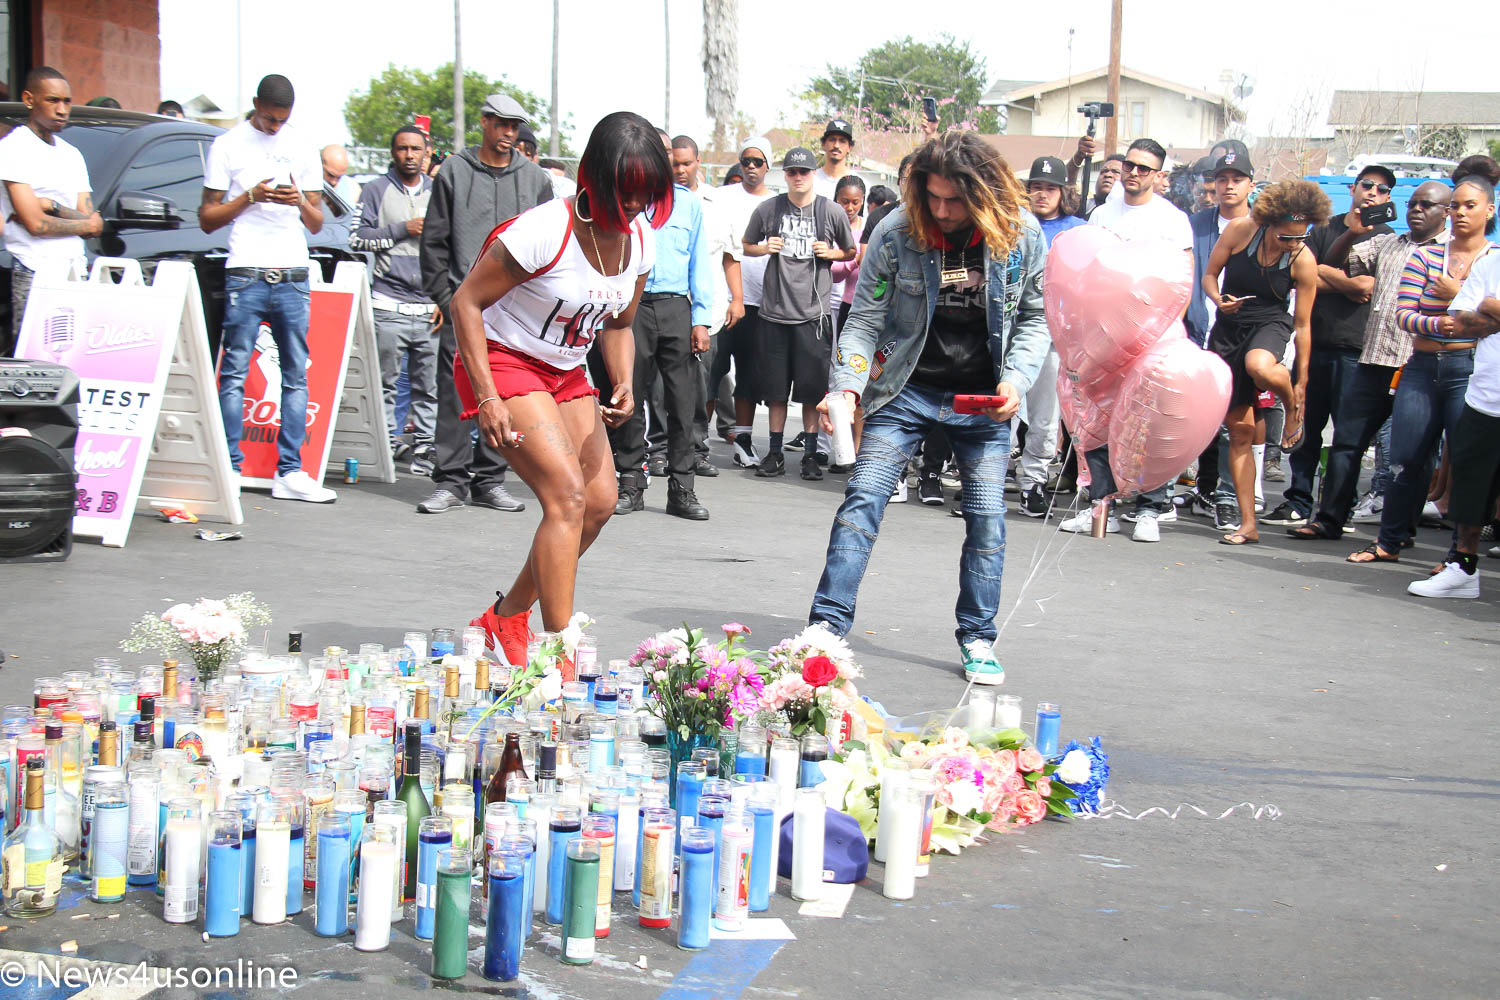 A death in the family: Fans remember Nipsey Hussle's legacy